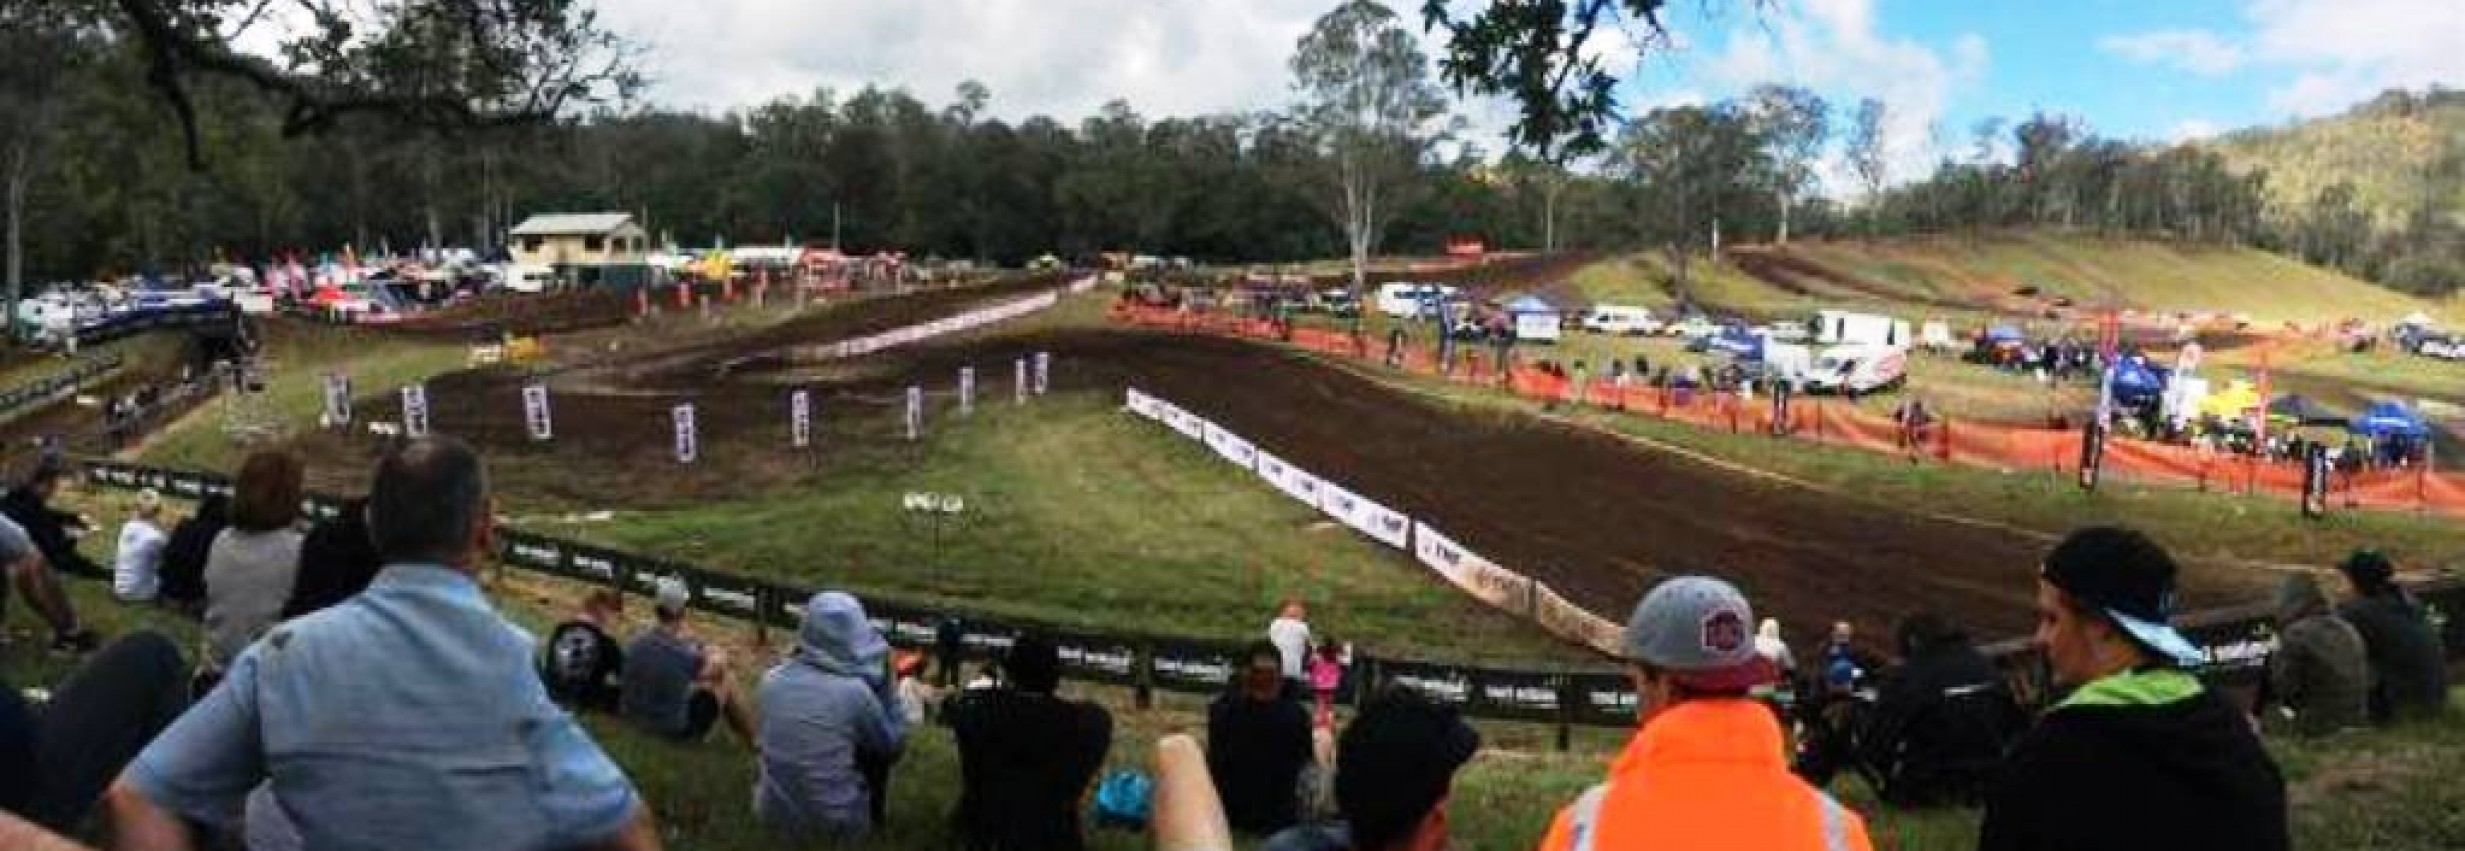 Conondale Motocross Track – Sunshine Coast Motorcycle Club